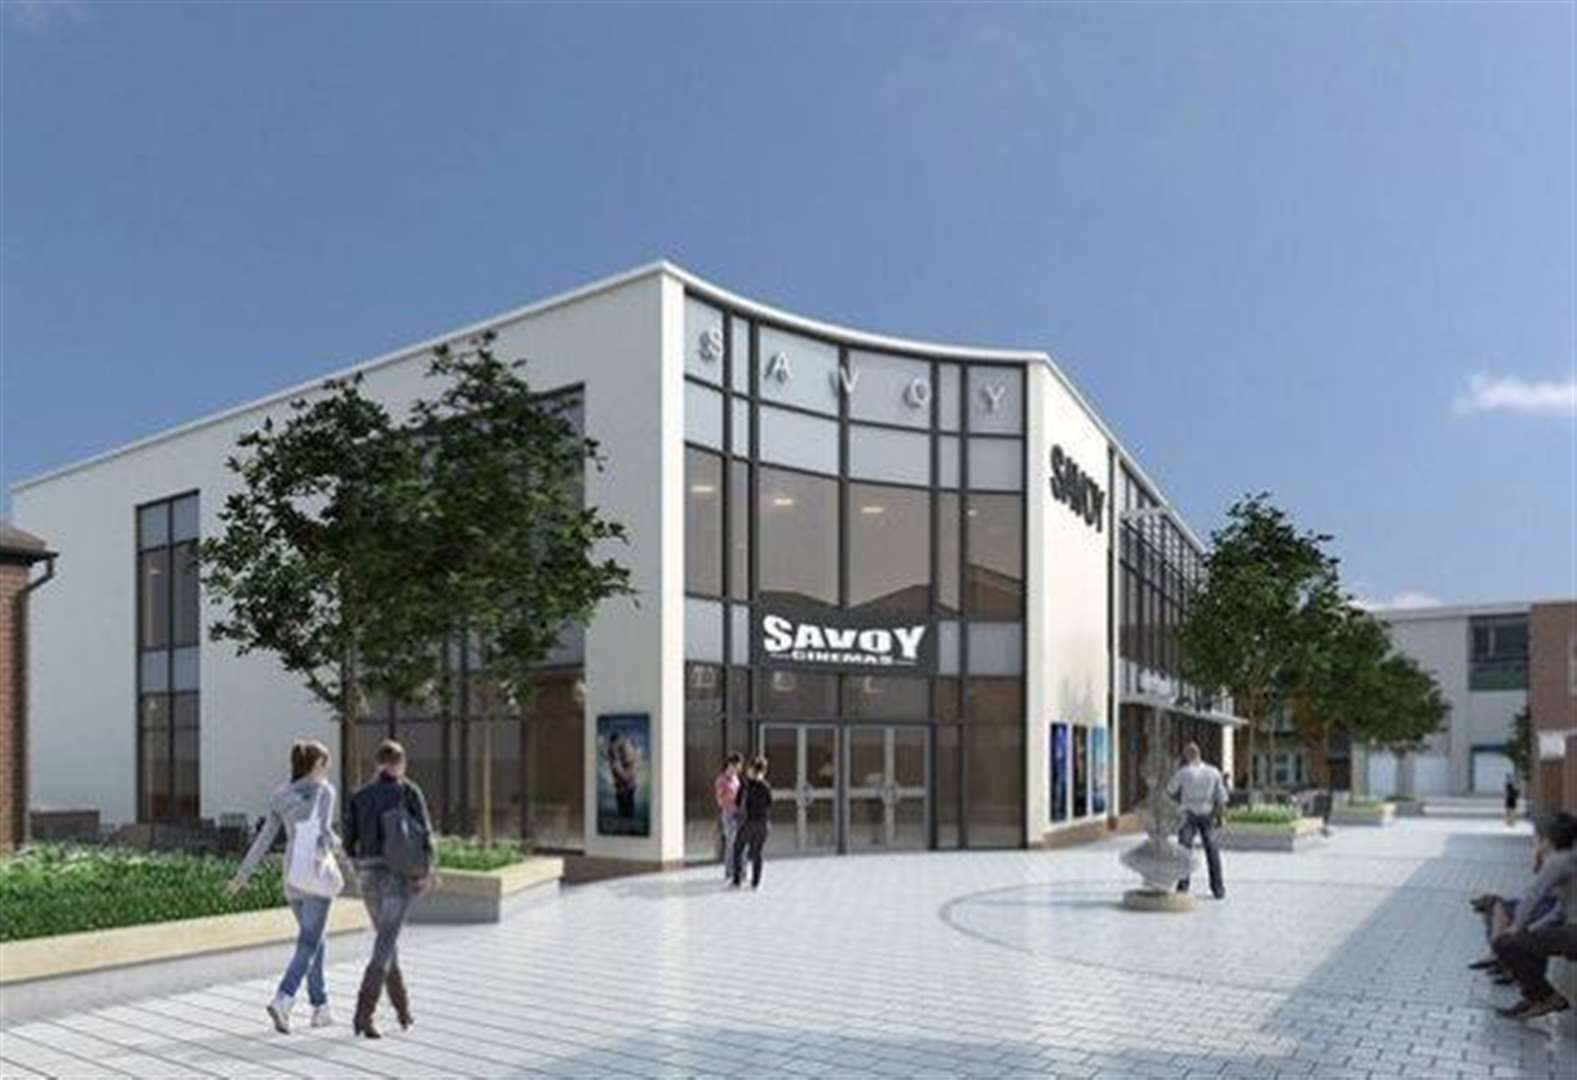 Savoy reveals tickets prices for new Grantham cinema